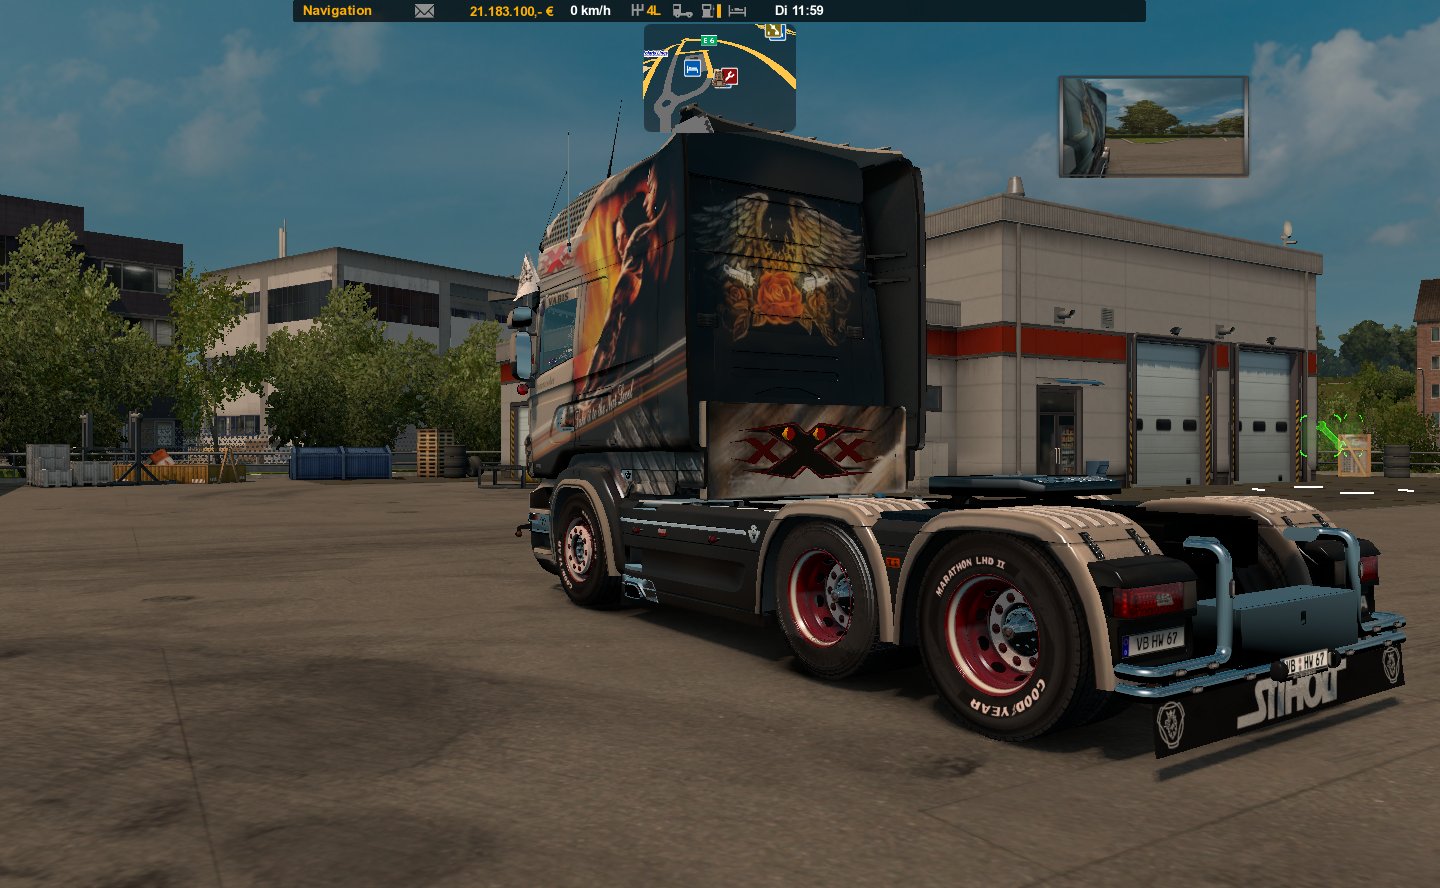 Fotoreihe Triple xXx Made by Capelle Ets2_000850buvk